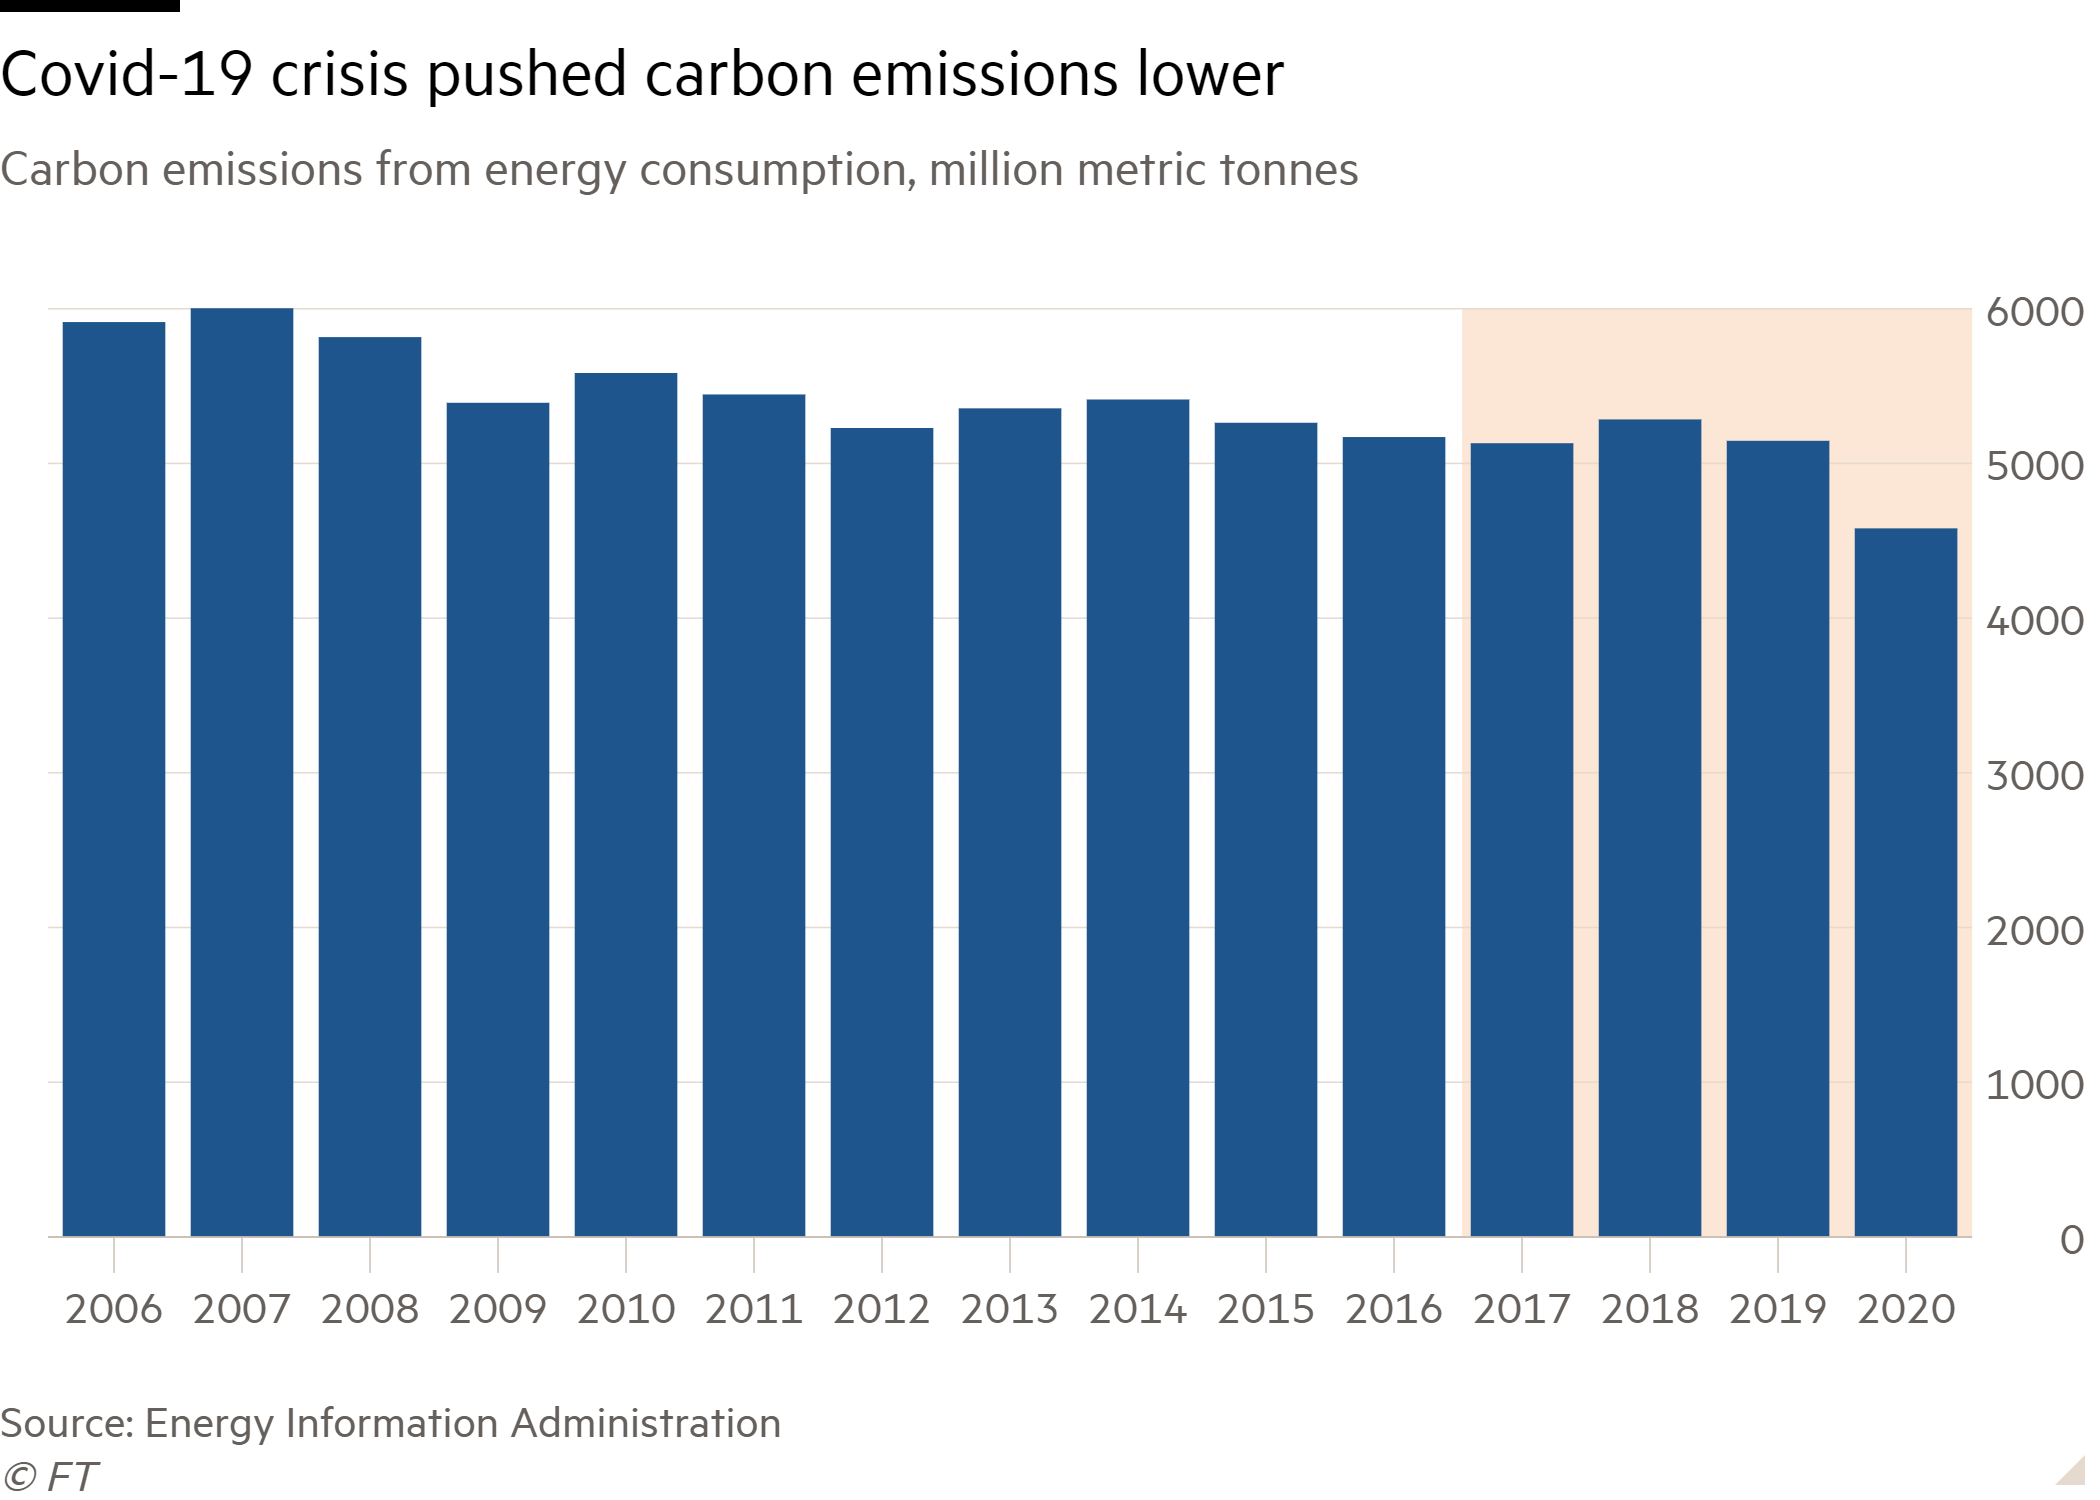 Column chart of Carbon emissions from energy consumption, million metric tonnes showing Covid-19 crisis pushed carbon emissions lower